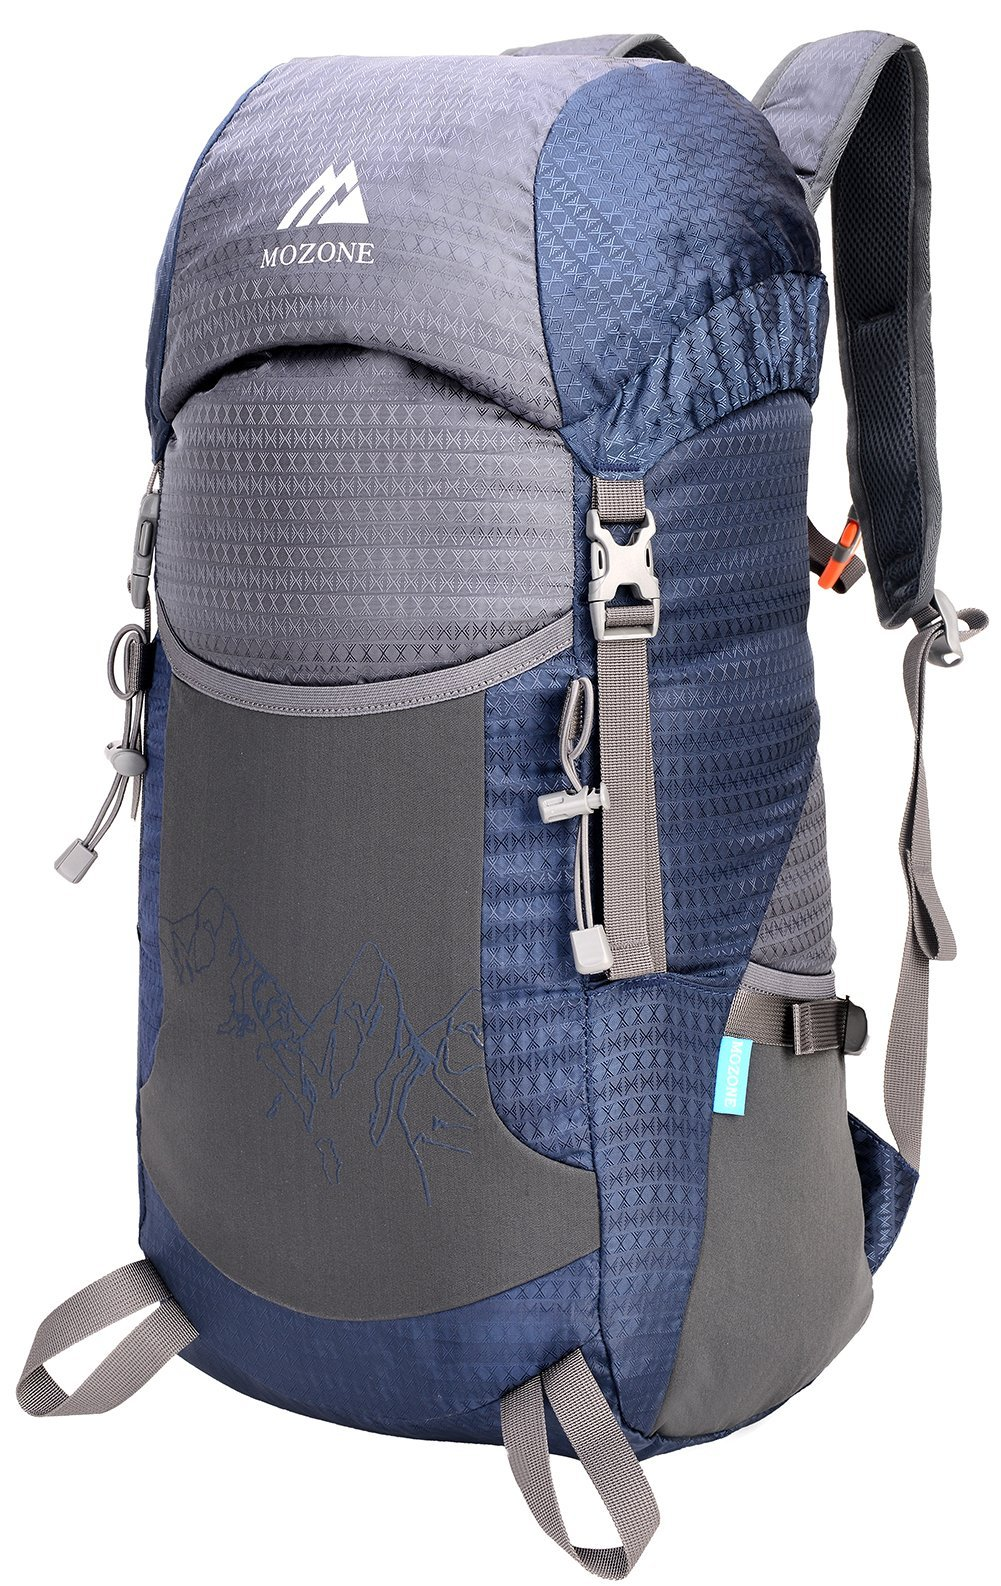 Mozone Large 45l Lightweight Travel Water Resistant Backpack/foldable & Packable Hiking Daypack (Navy Blue)